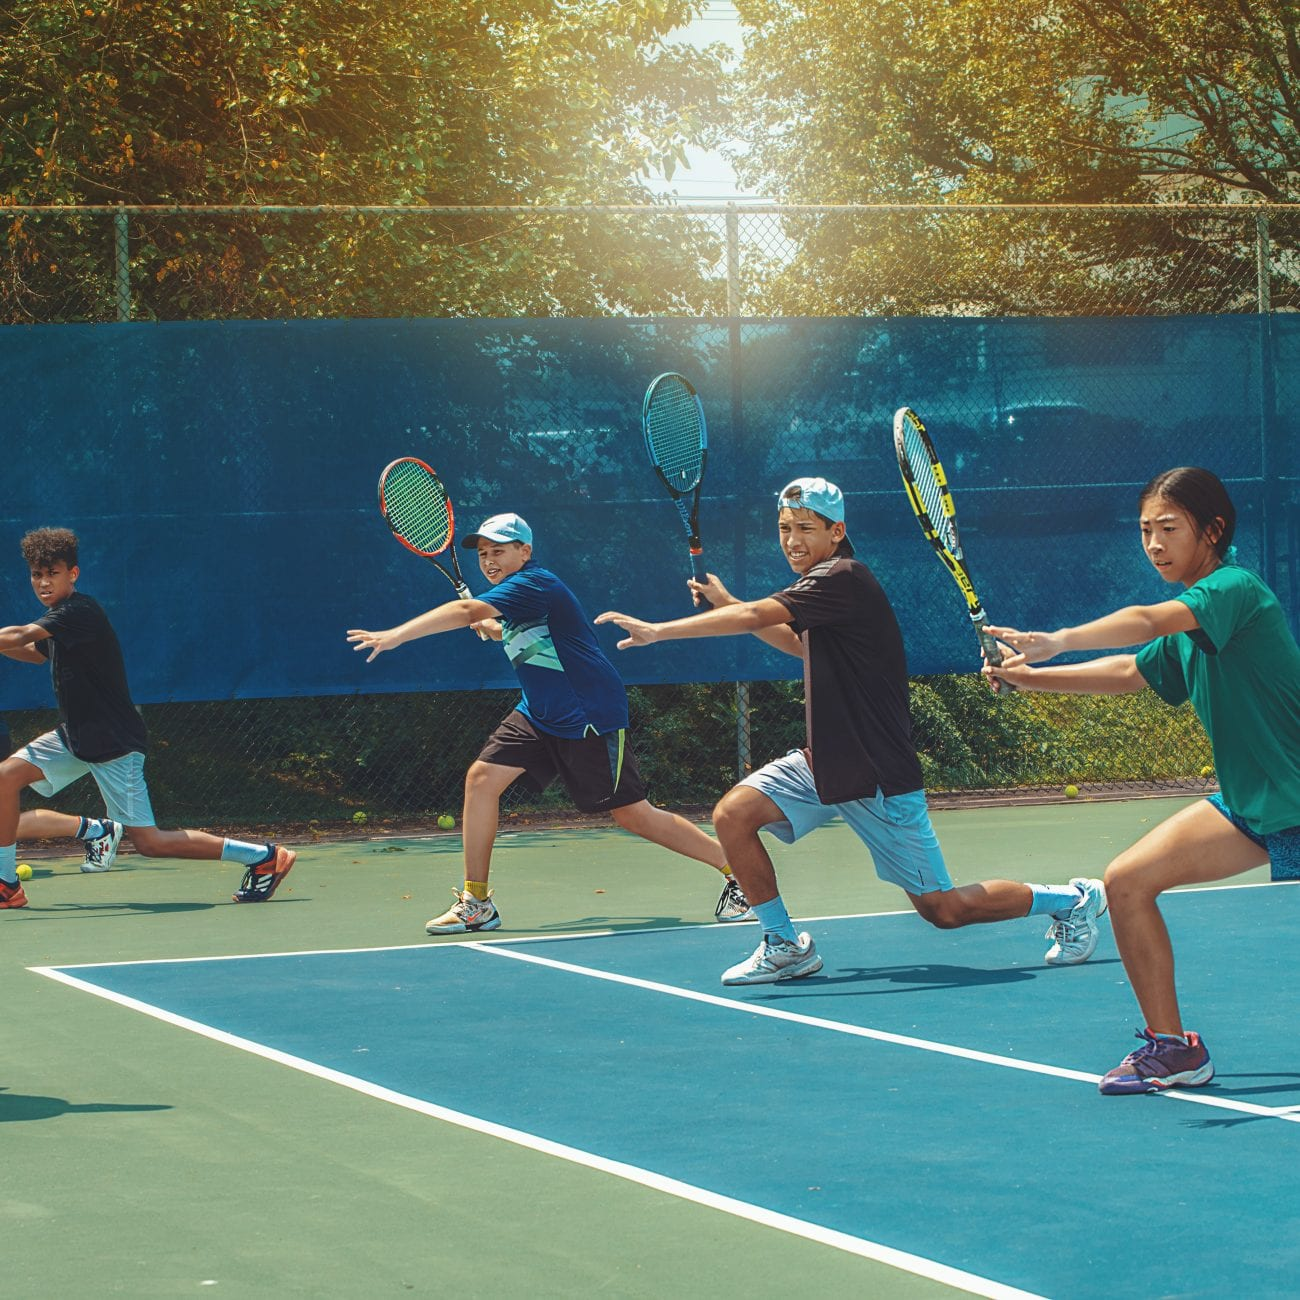 Junior tennis lessons in Cherry Hill